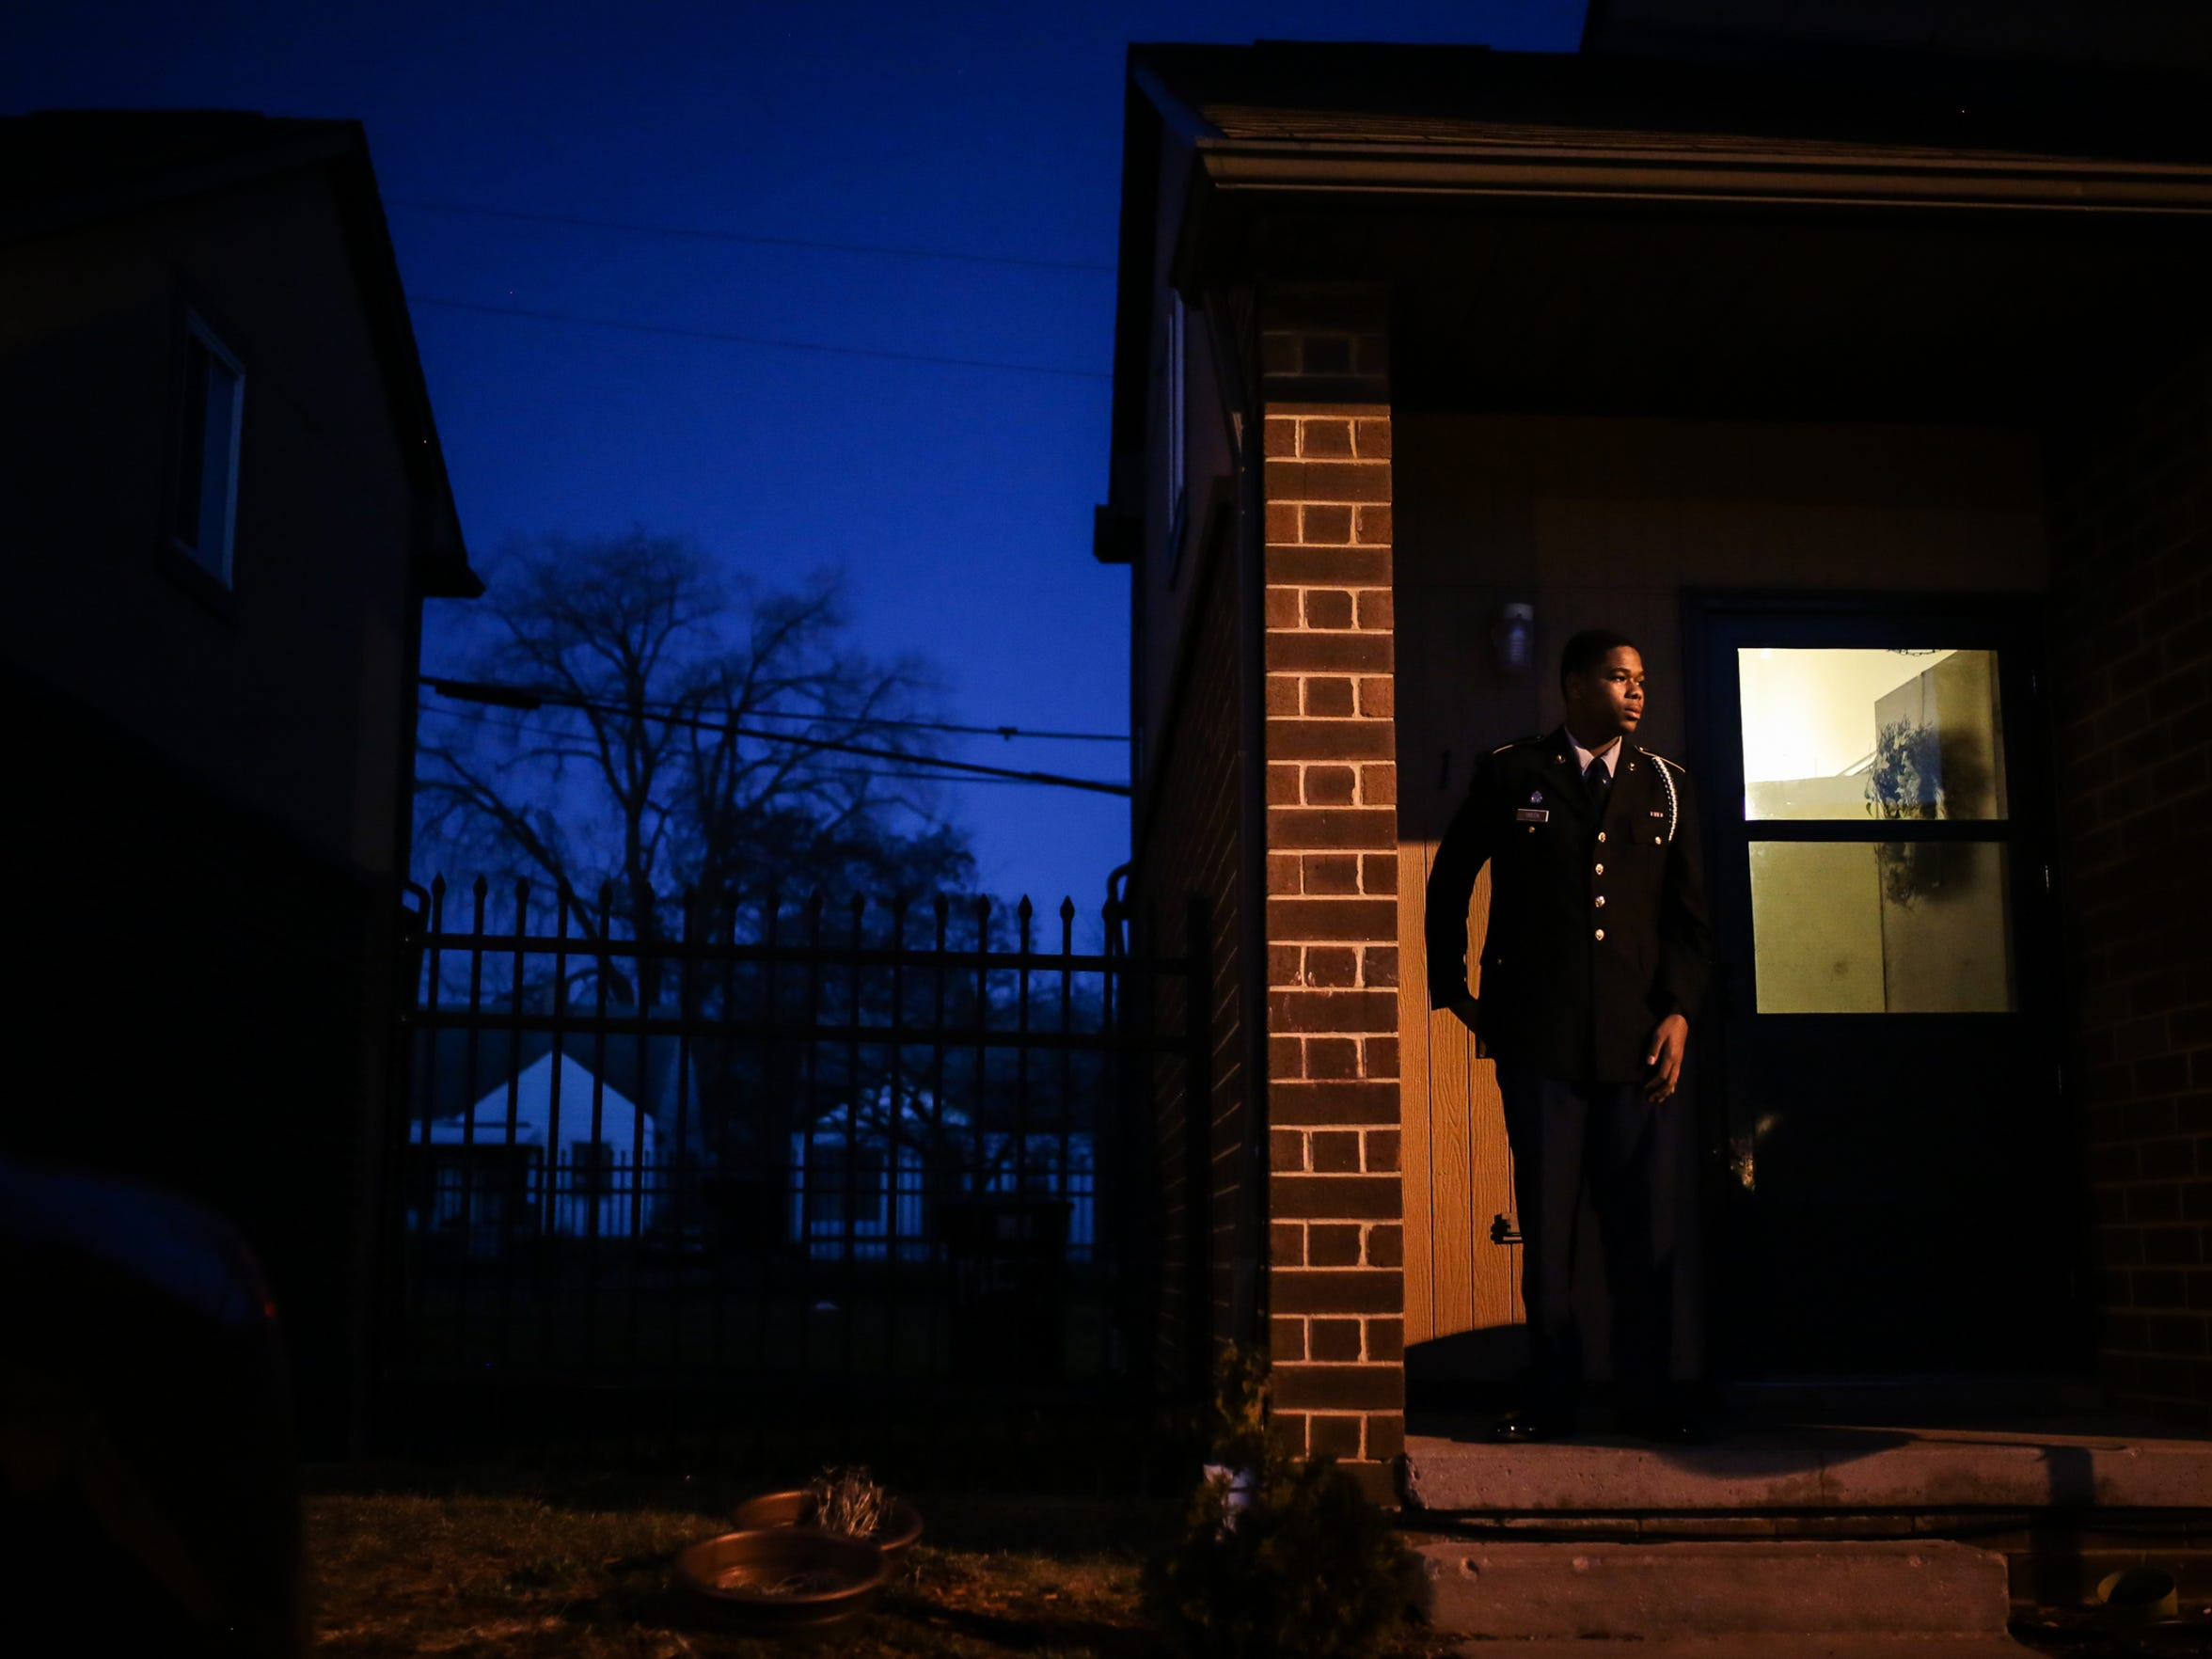 Myles Green, 15, stands on his porch in the darkness of a late winter's evening on March 7, 2017 while wearing his JROTC uniform. He lives with his mother and sister in the Sojourner Truth Housing Project on Detroit's east side. It's the last stop of the day for the Salvation Army's Bed and Bread program food truck.